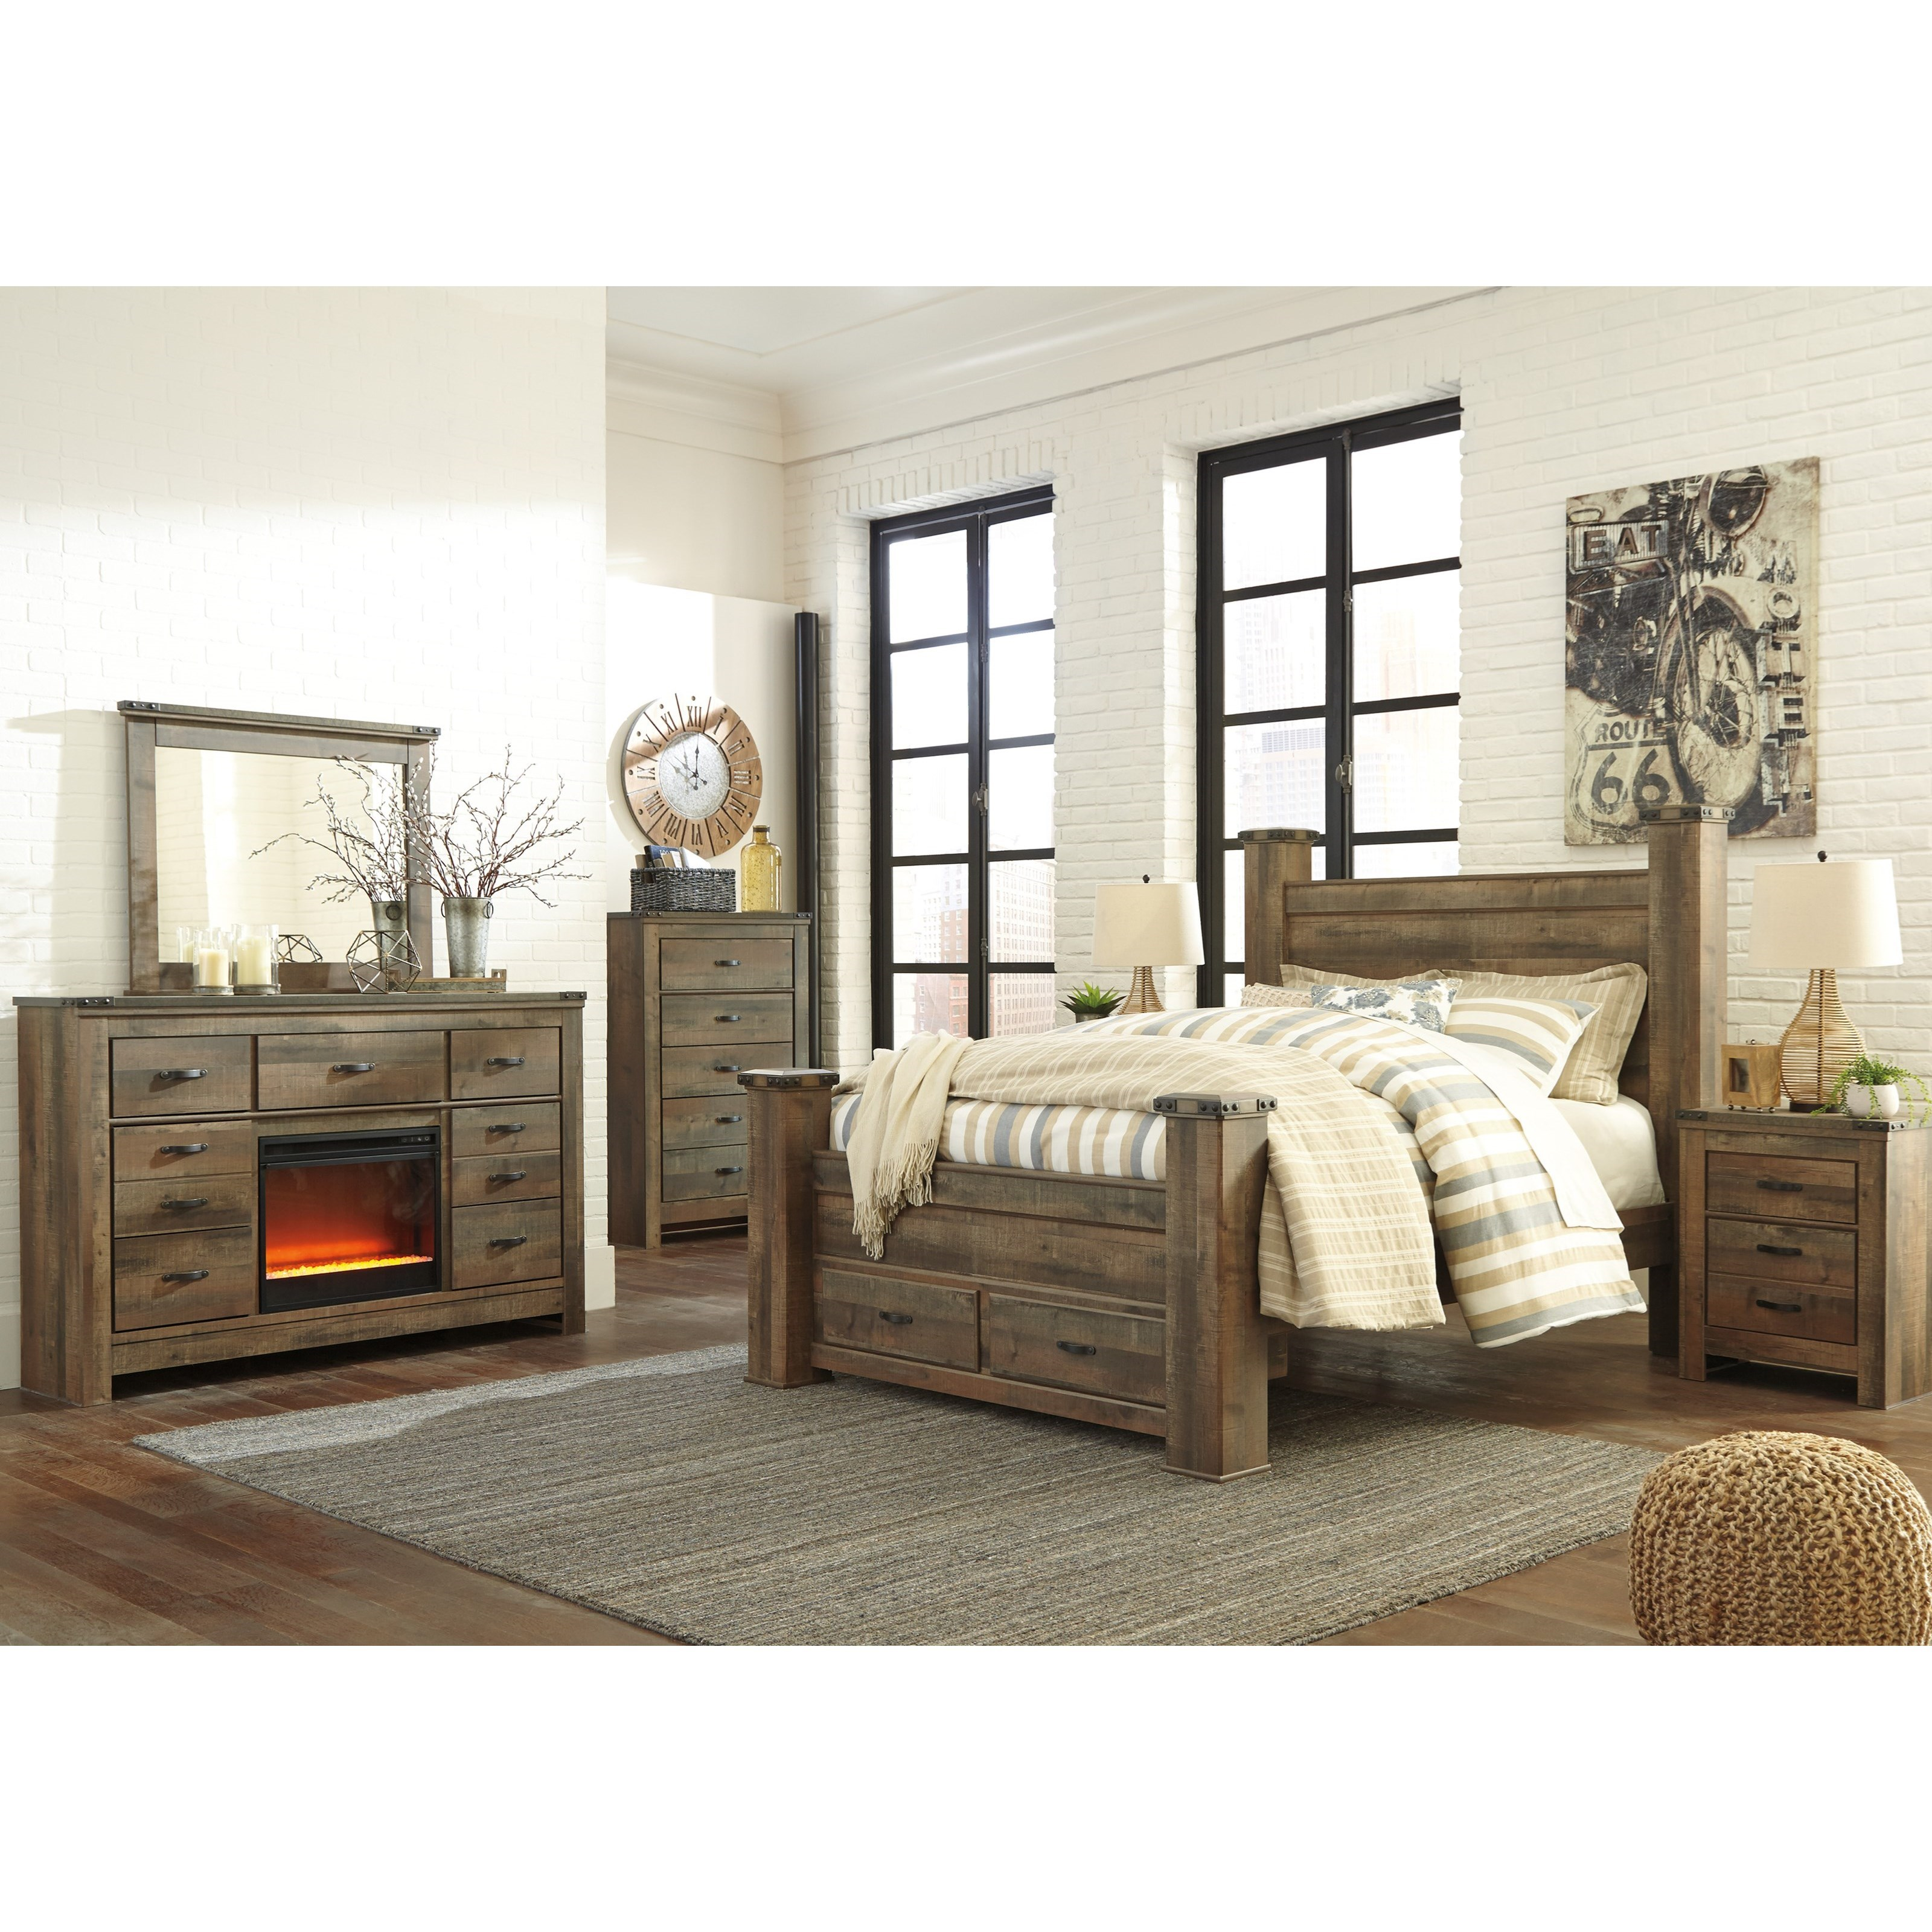 Ashley City Furniture: Signature Design By Ashley Trinell Queen Bedroom Group